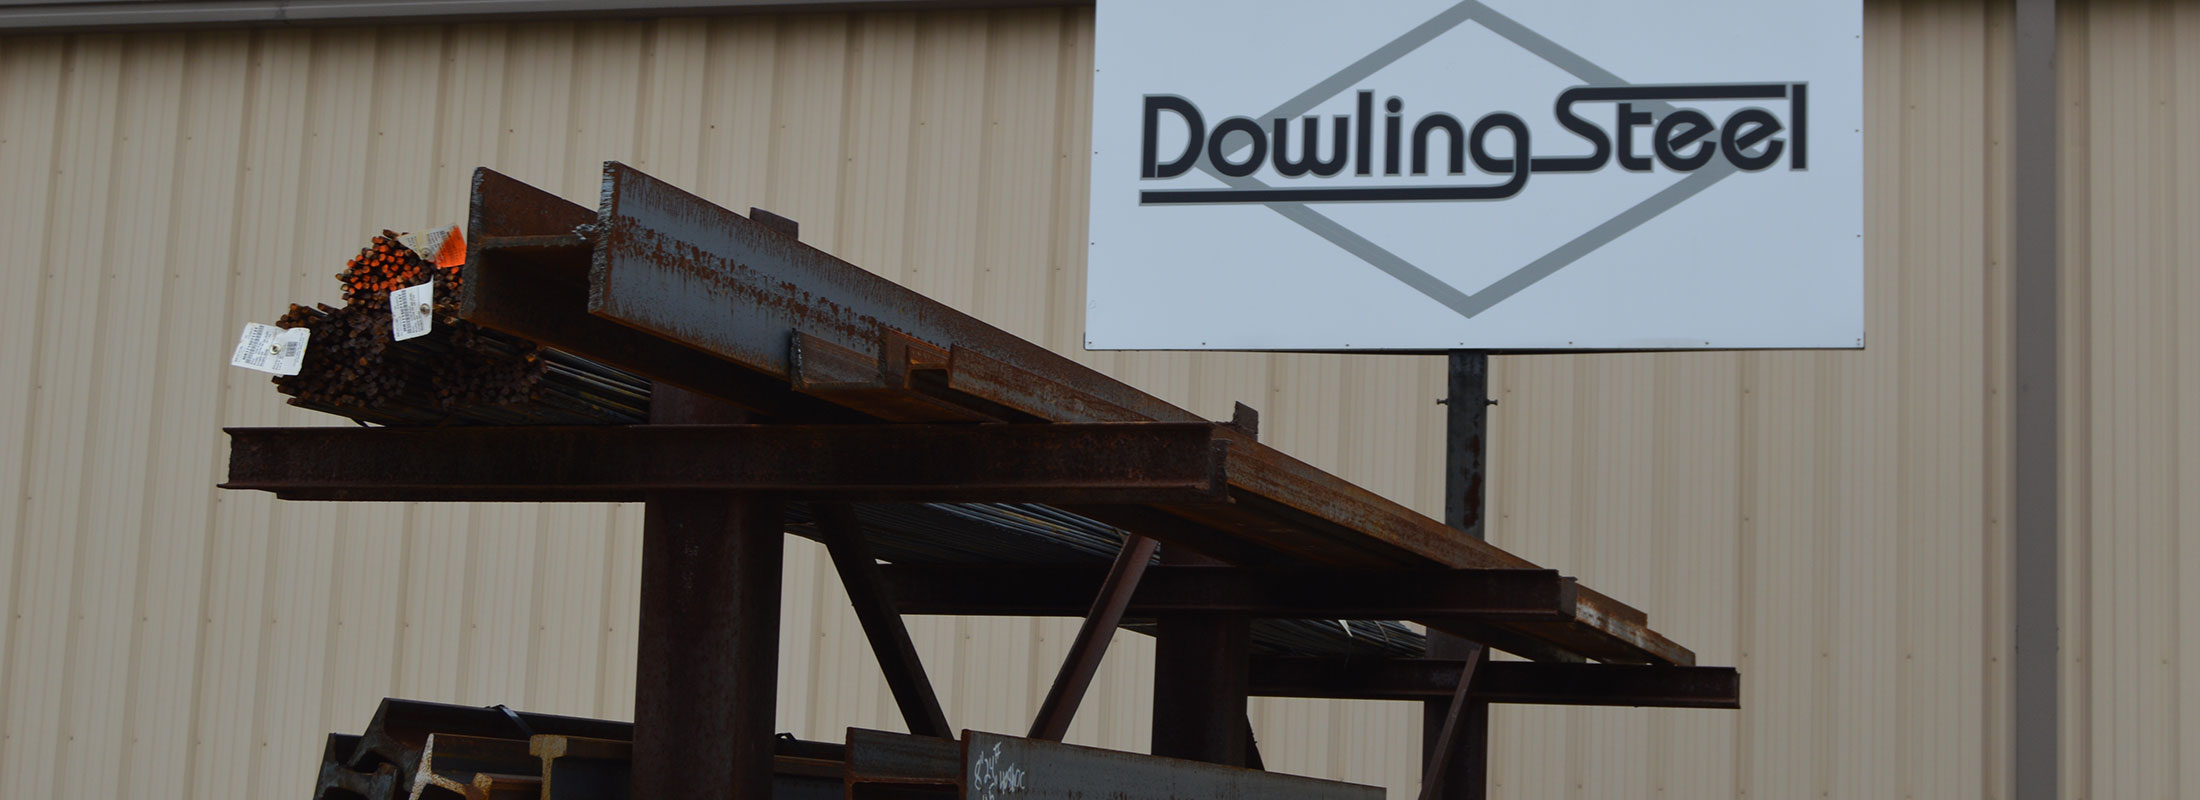 Dowling Steel Sign